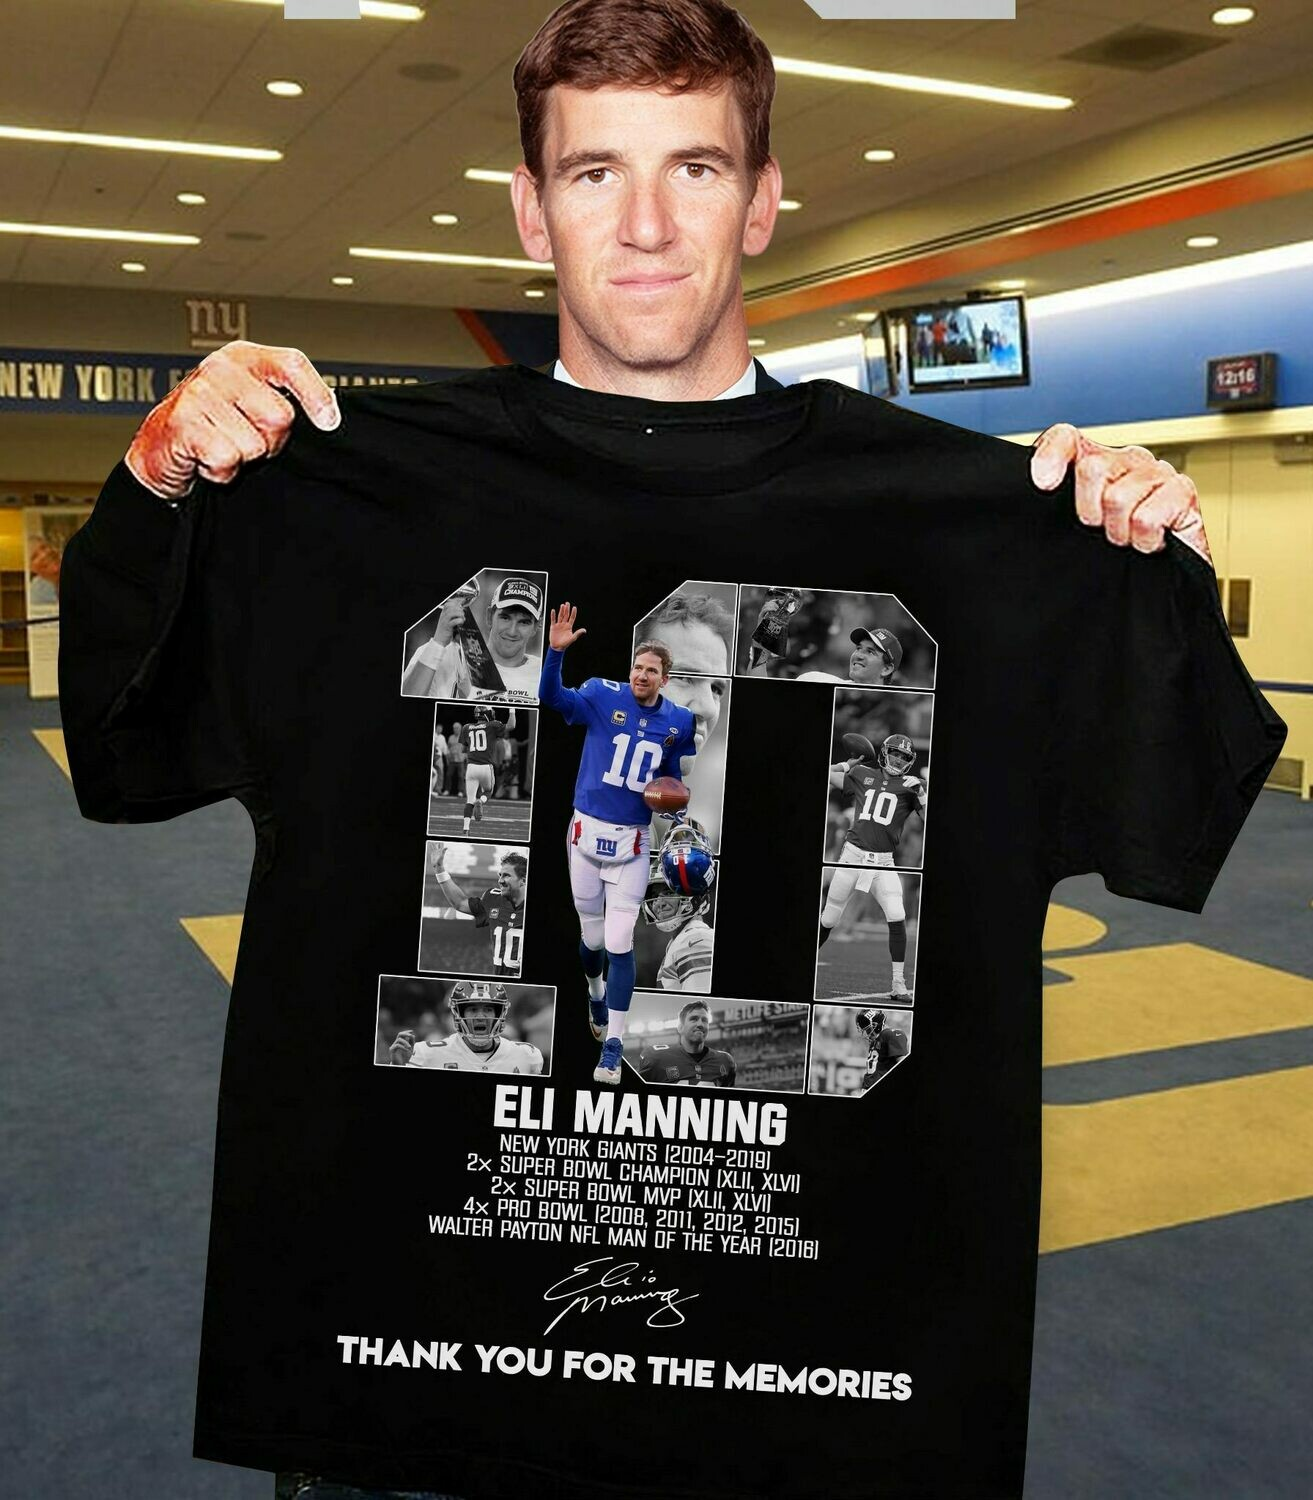 10 Eli Manning New York Giants ,Football Poster, Kids Decor, Mac Cave Gift, Sports Decor, birthday gift idea, NewYork Giants shirt, sorts poster, New York Giants, Eli Manning poster, Eli Manning shirt